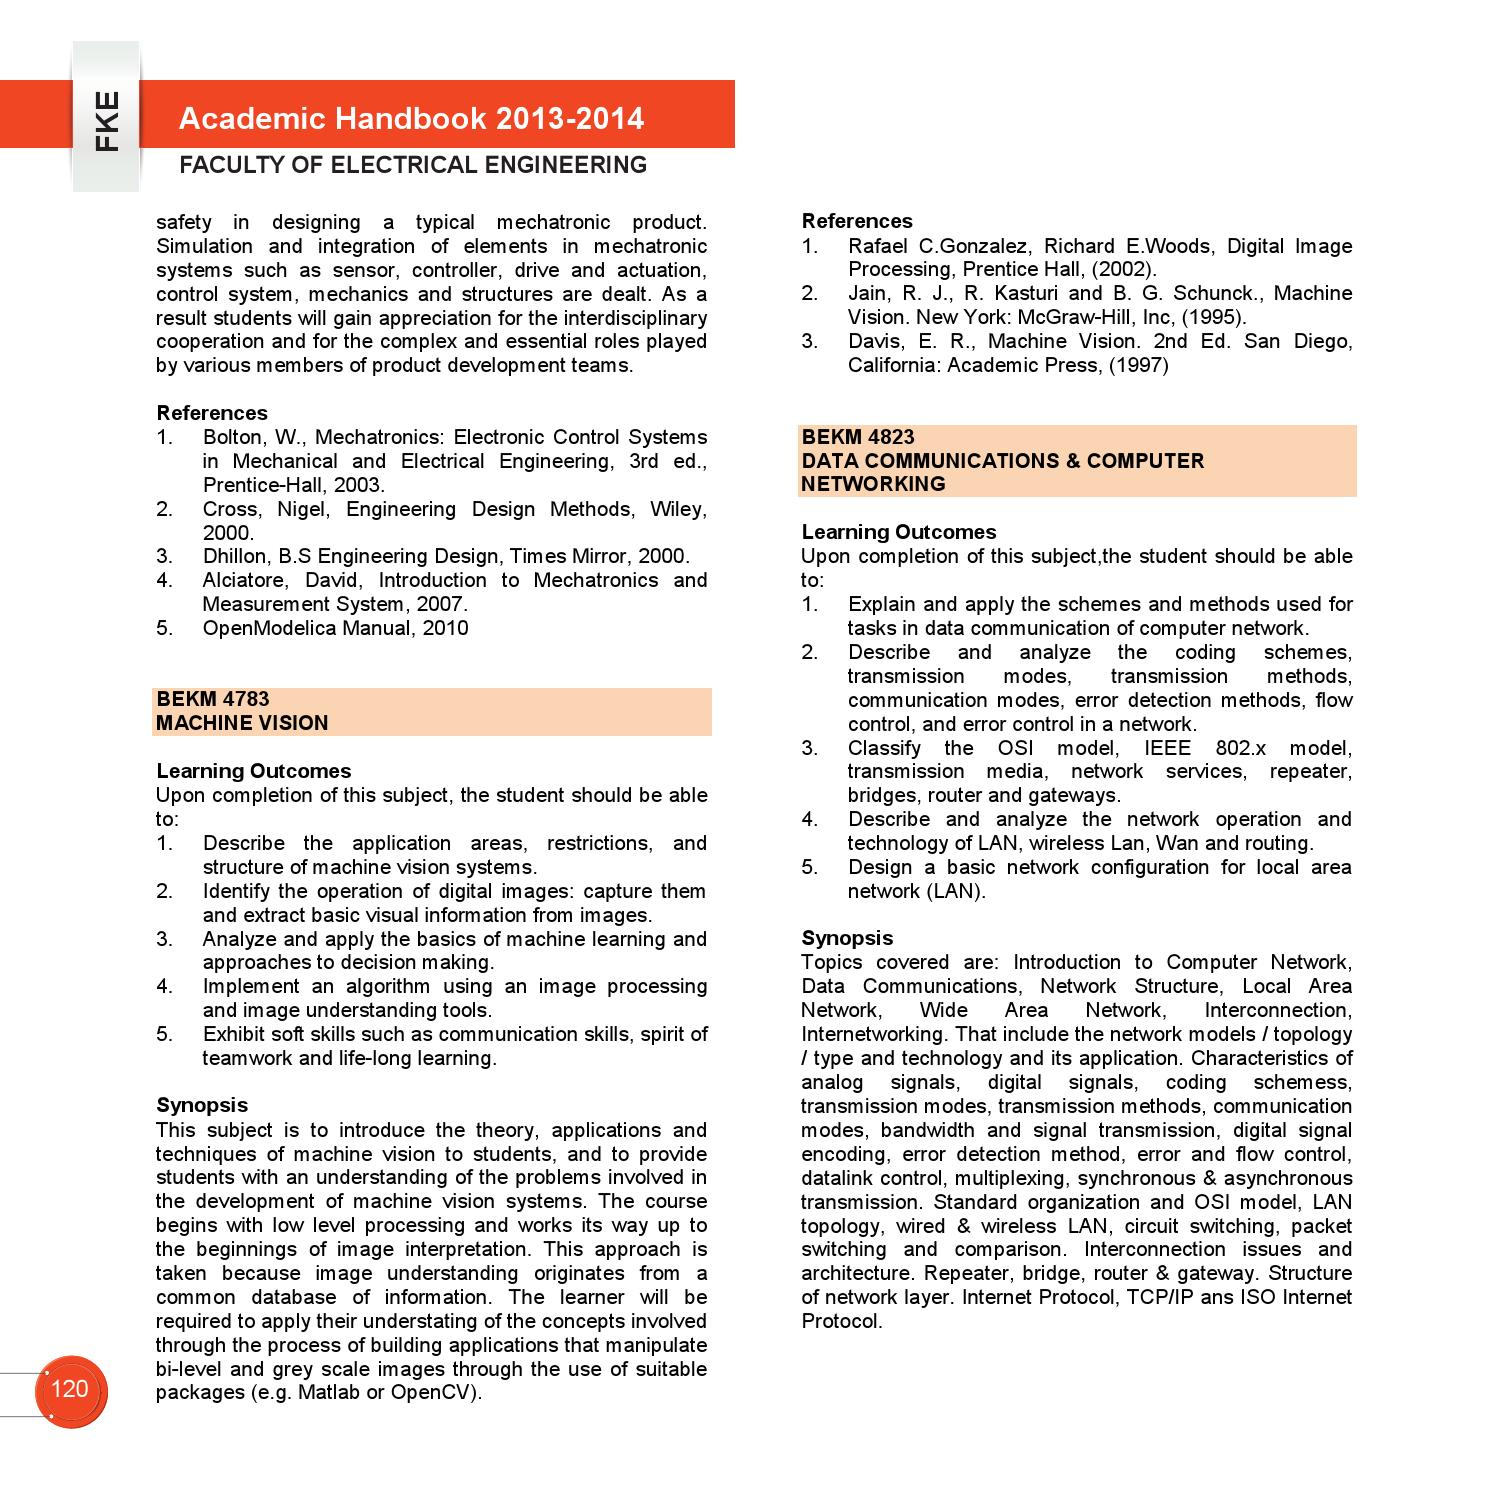 Academic Handbook FKE UTeM 2013/2014 by Vincent Loi - issuu